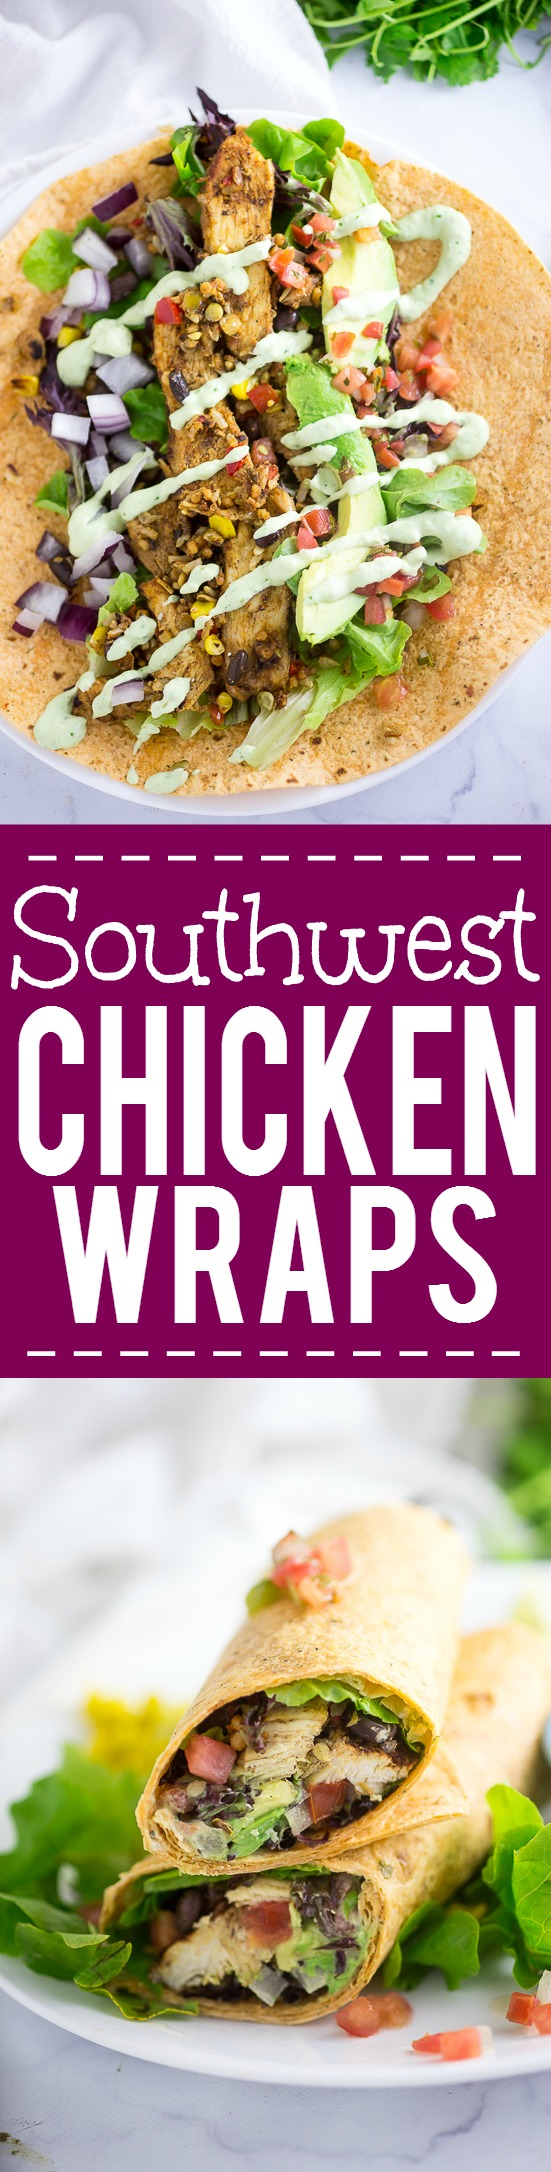 Southwest Chicken Wraps Recipe - Healthy quick and easy Southwest Chicken Wraps with a creamy cilantro lime sauce are a yummy way to eat fresh. Make them for the whole family in under 30 minutes! Super easy and health (or lunch!) recipe!